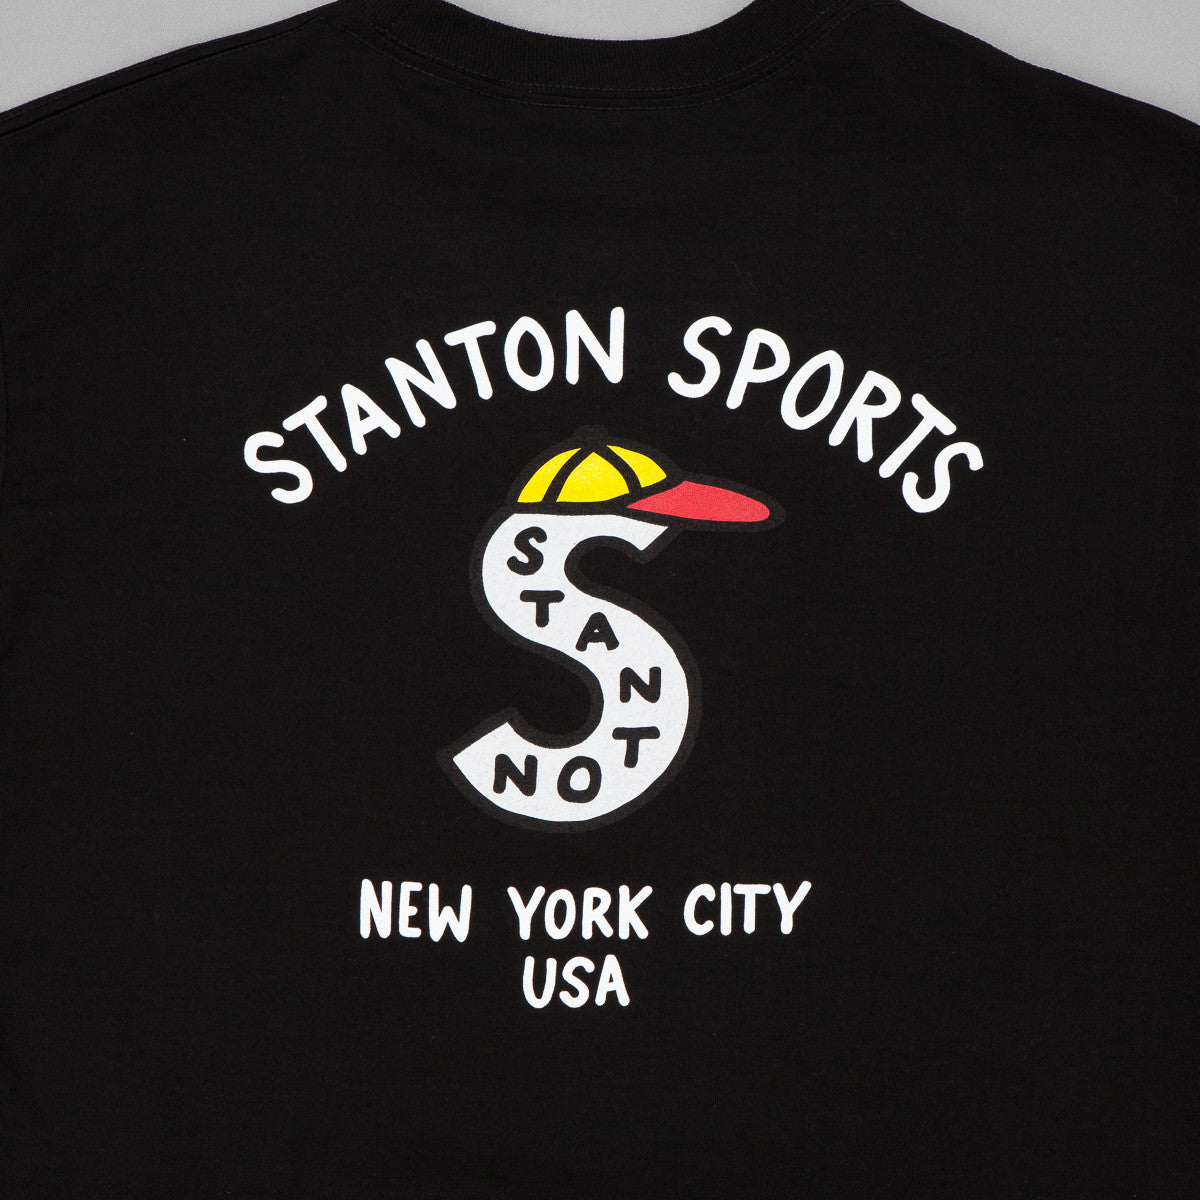 Stanton Street Sports Cap Long Sleeve T-Shirt - Black